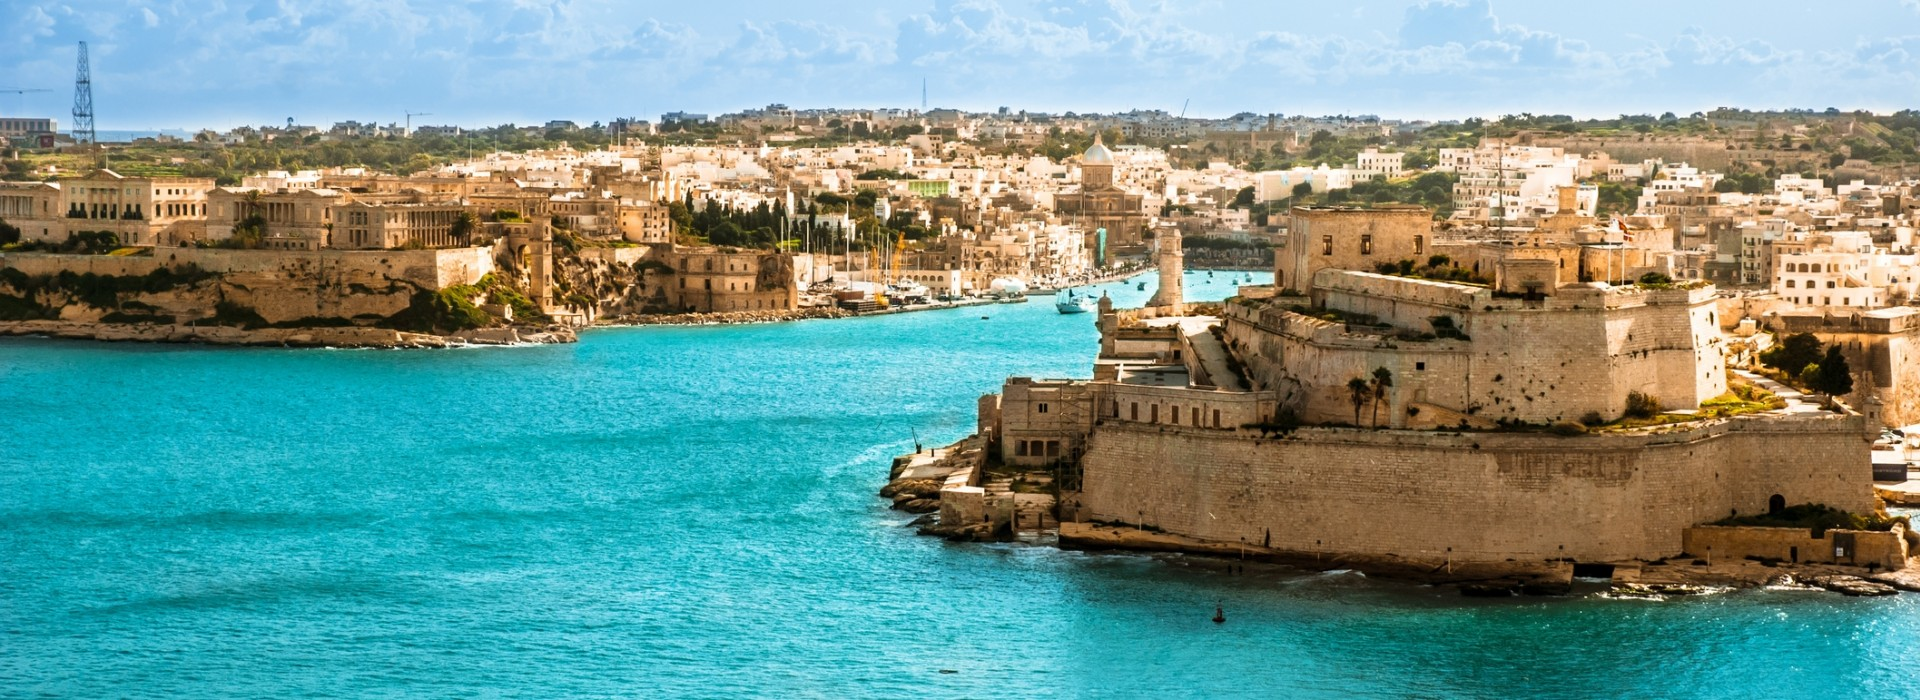 0 Last Minute Holidays And Travel Deals To Malta Bookmundi